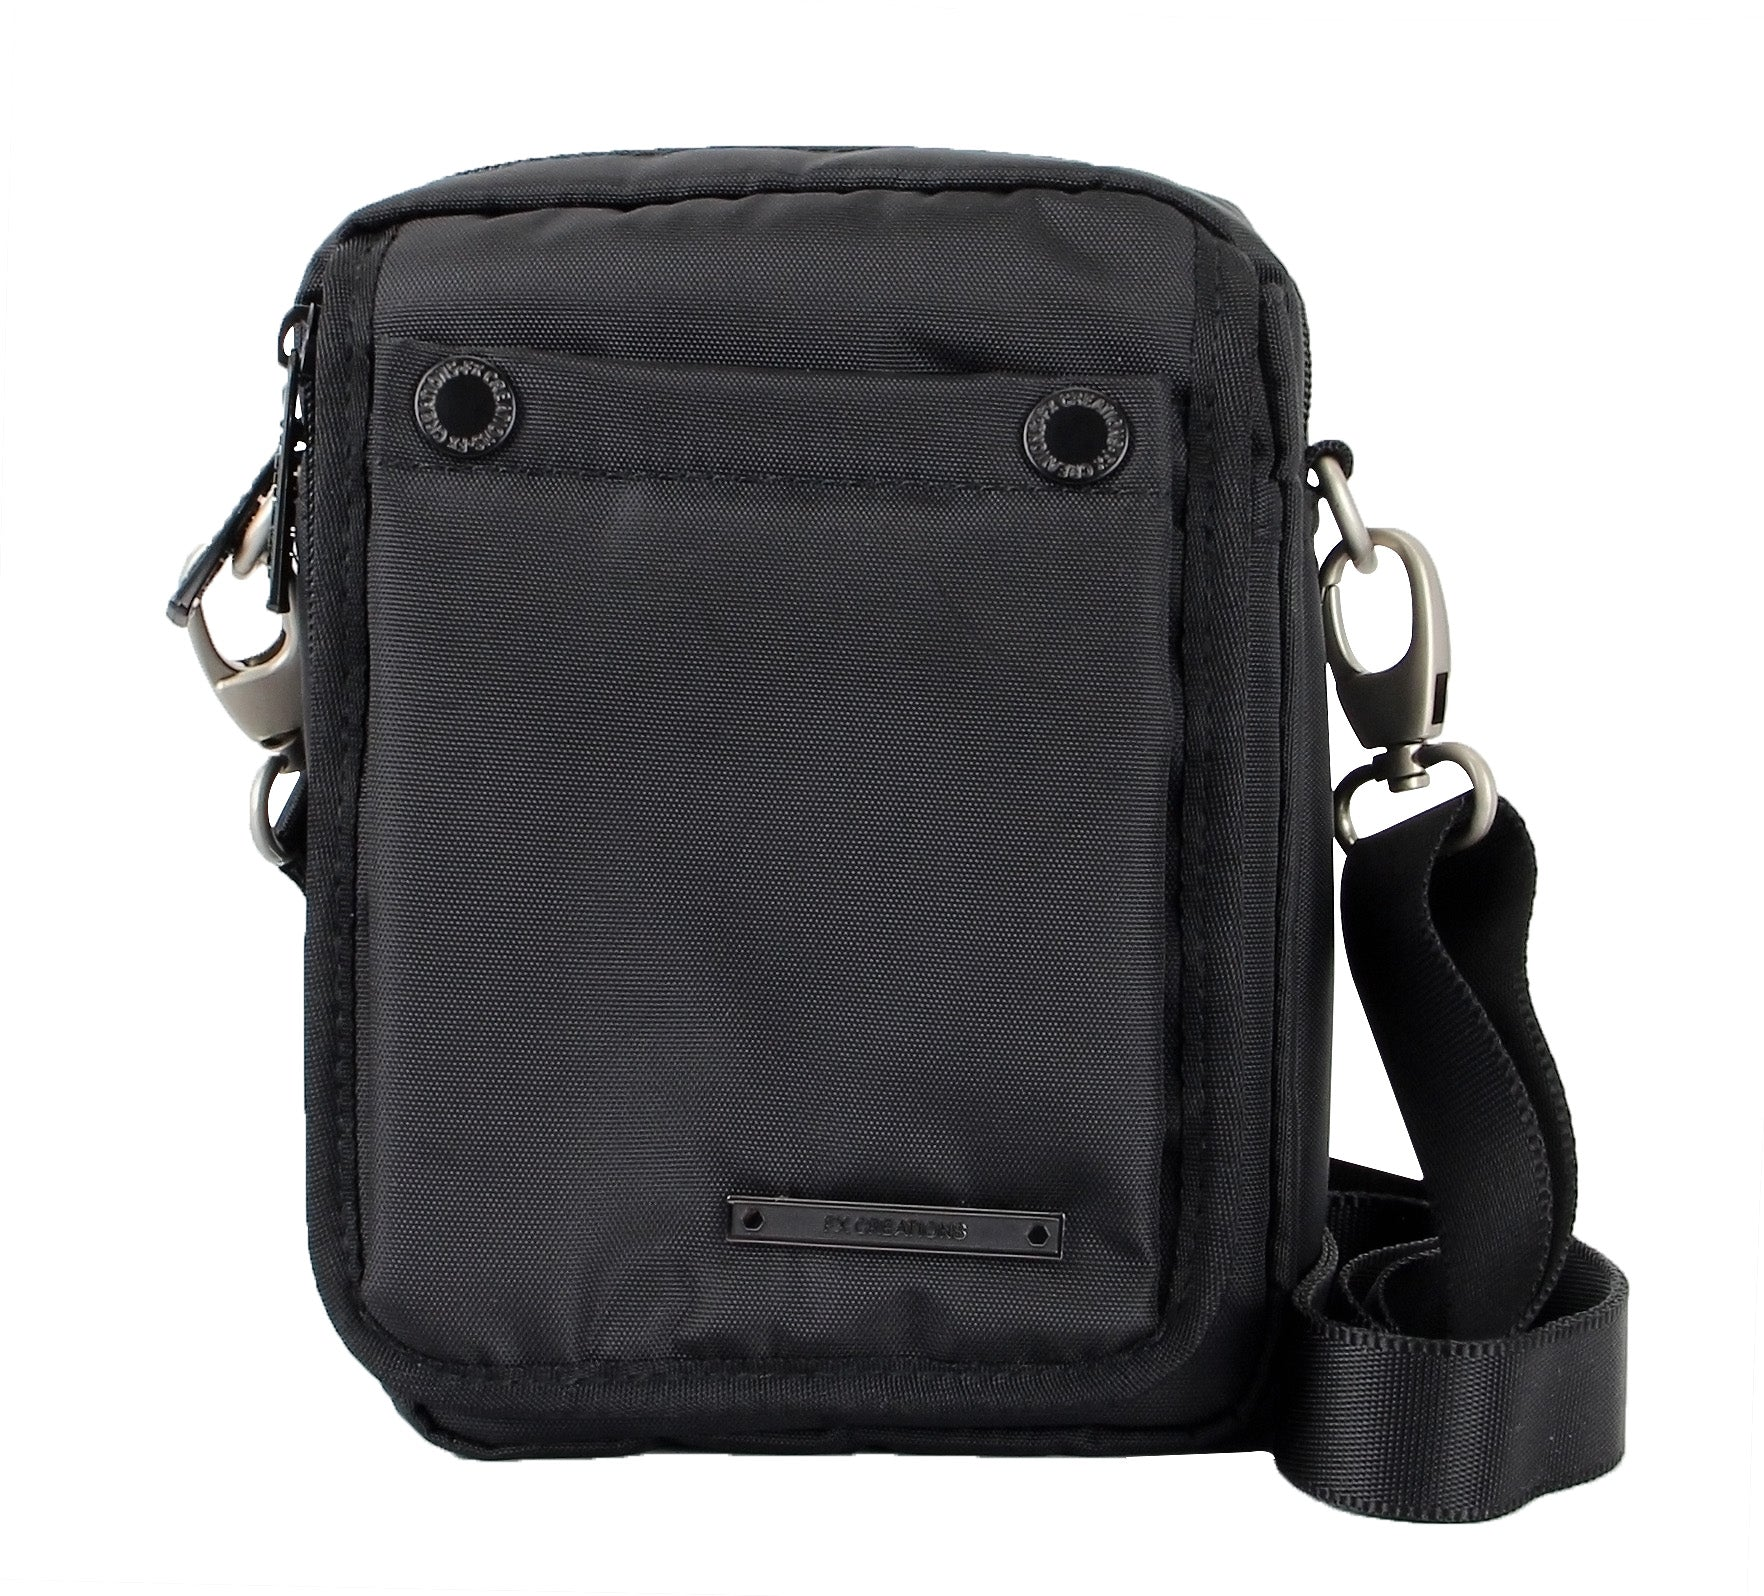 Shoulder Bag - FX Creations BAT Double Function Shoulder Bag cum Waist Pouch | FX Creations Singapore